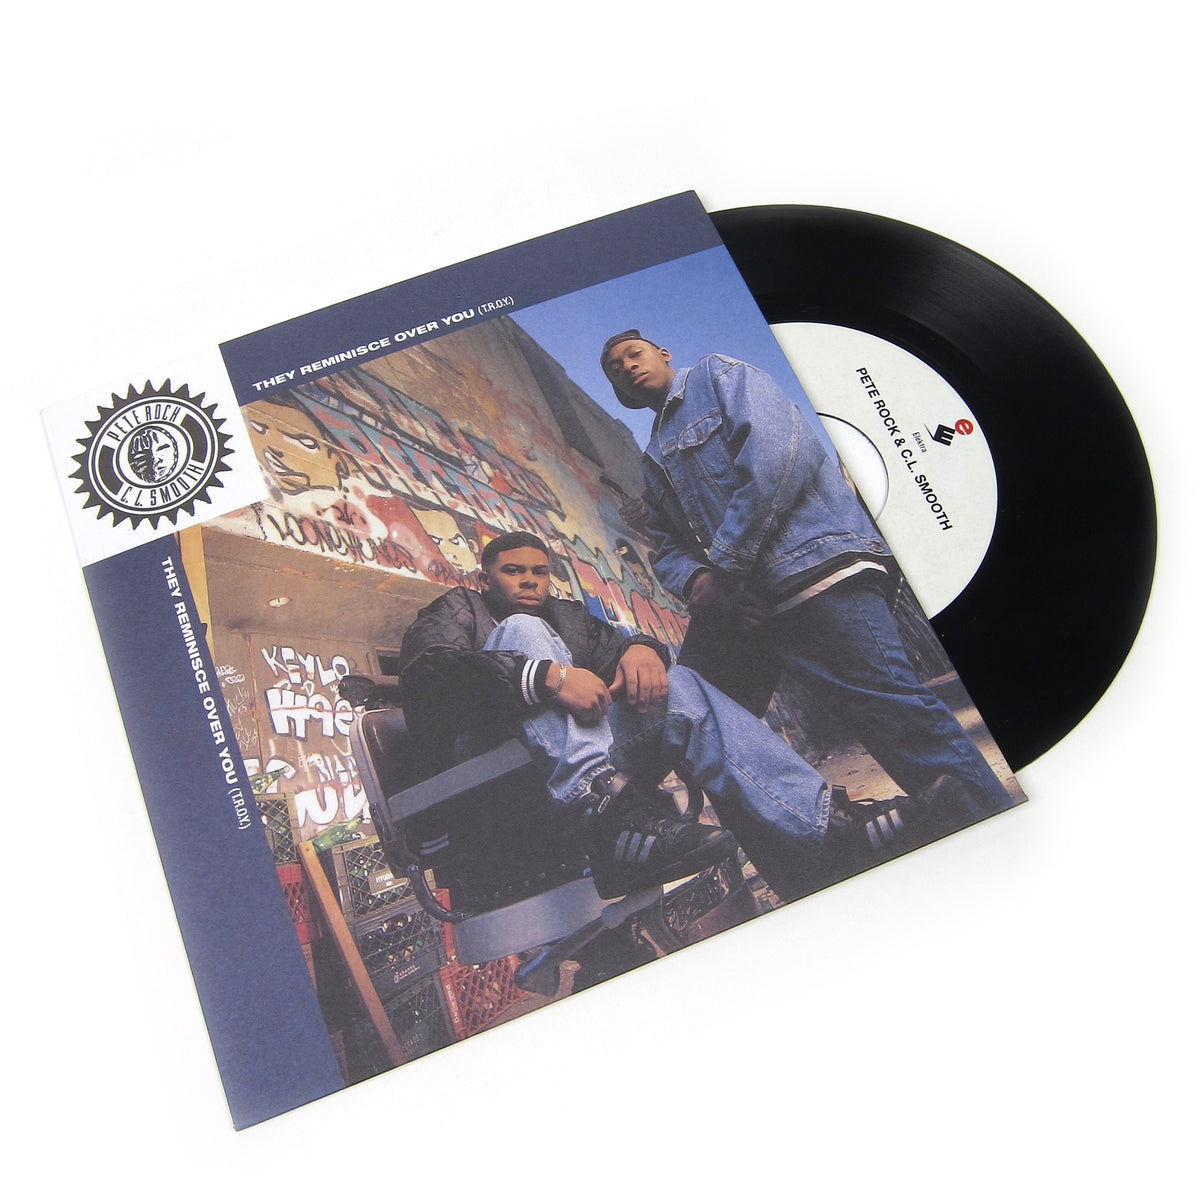 Pete Rock & C.L. Smooth: They Reminisce Over You (T.R.O.Y.) Vinyl 7""